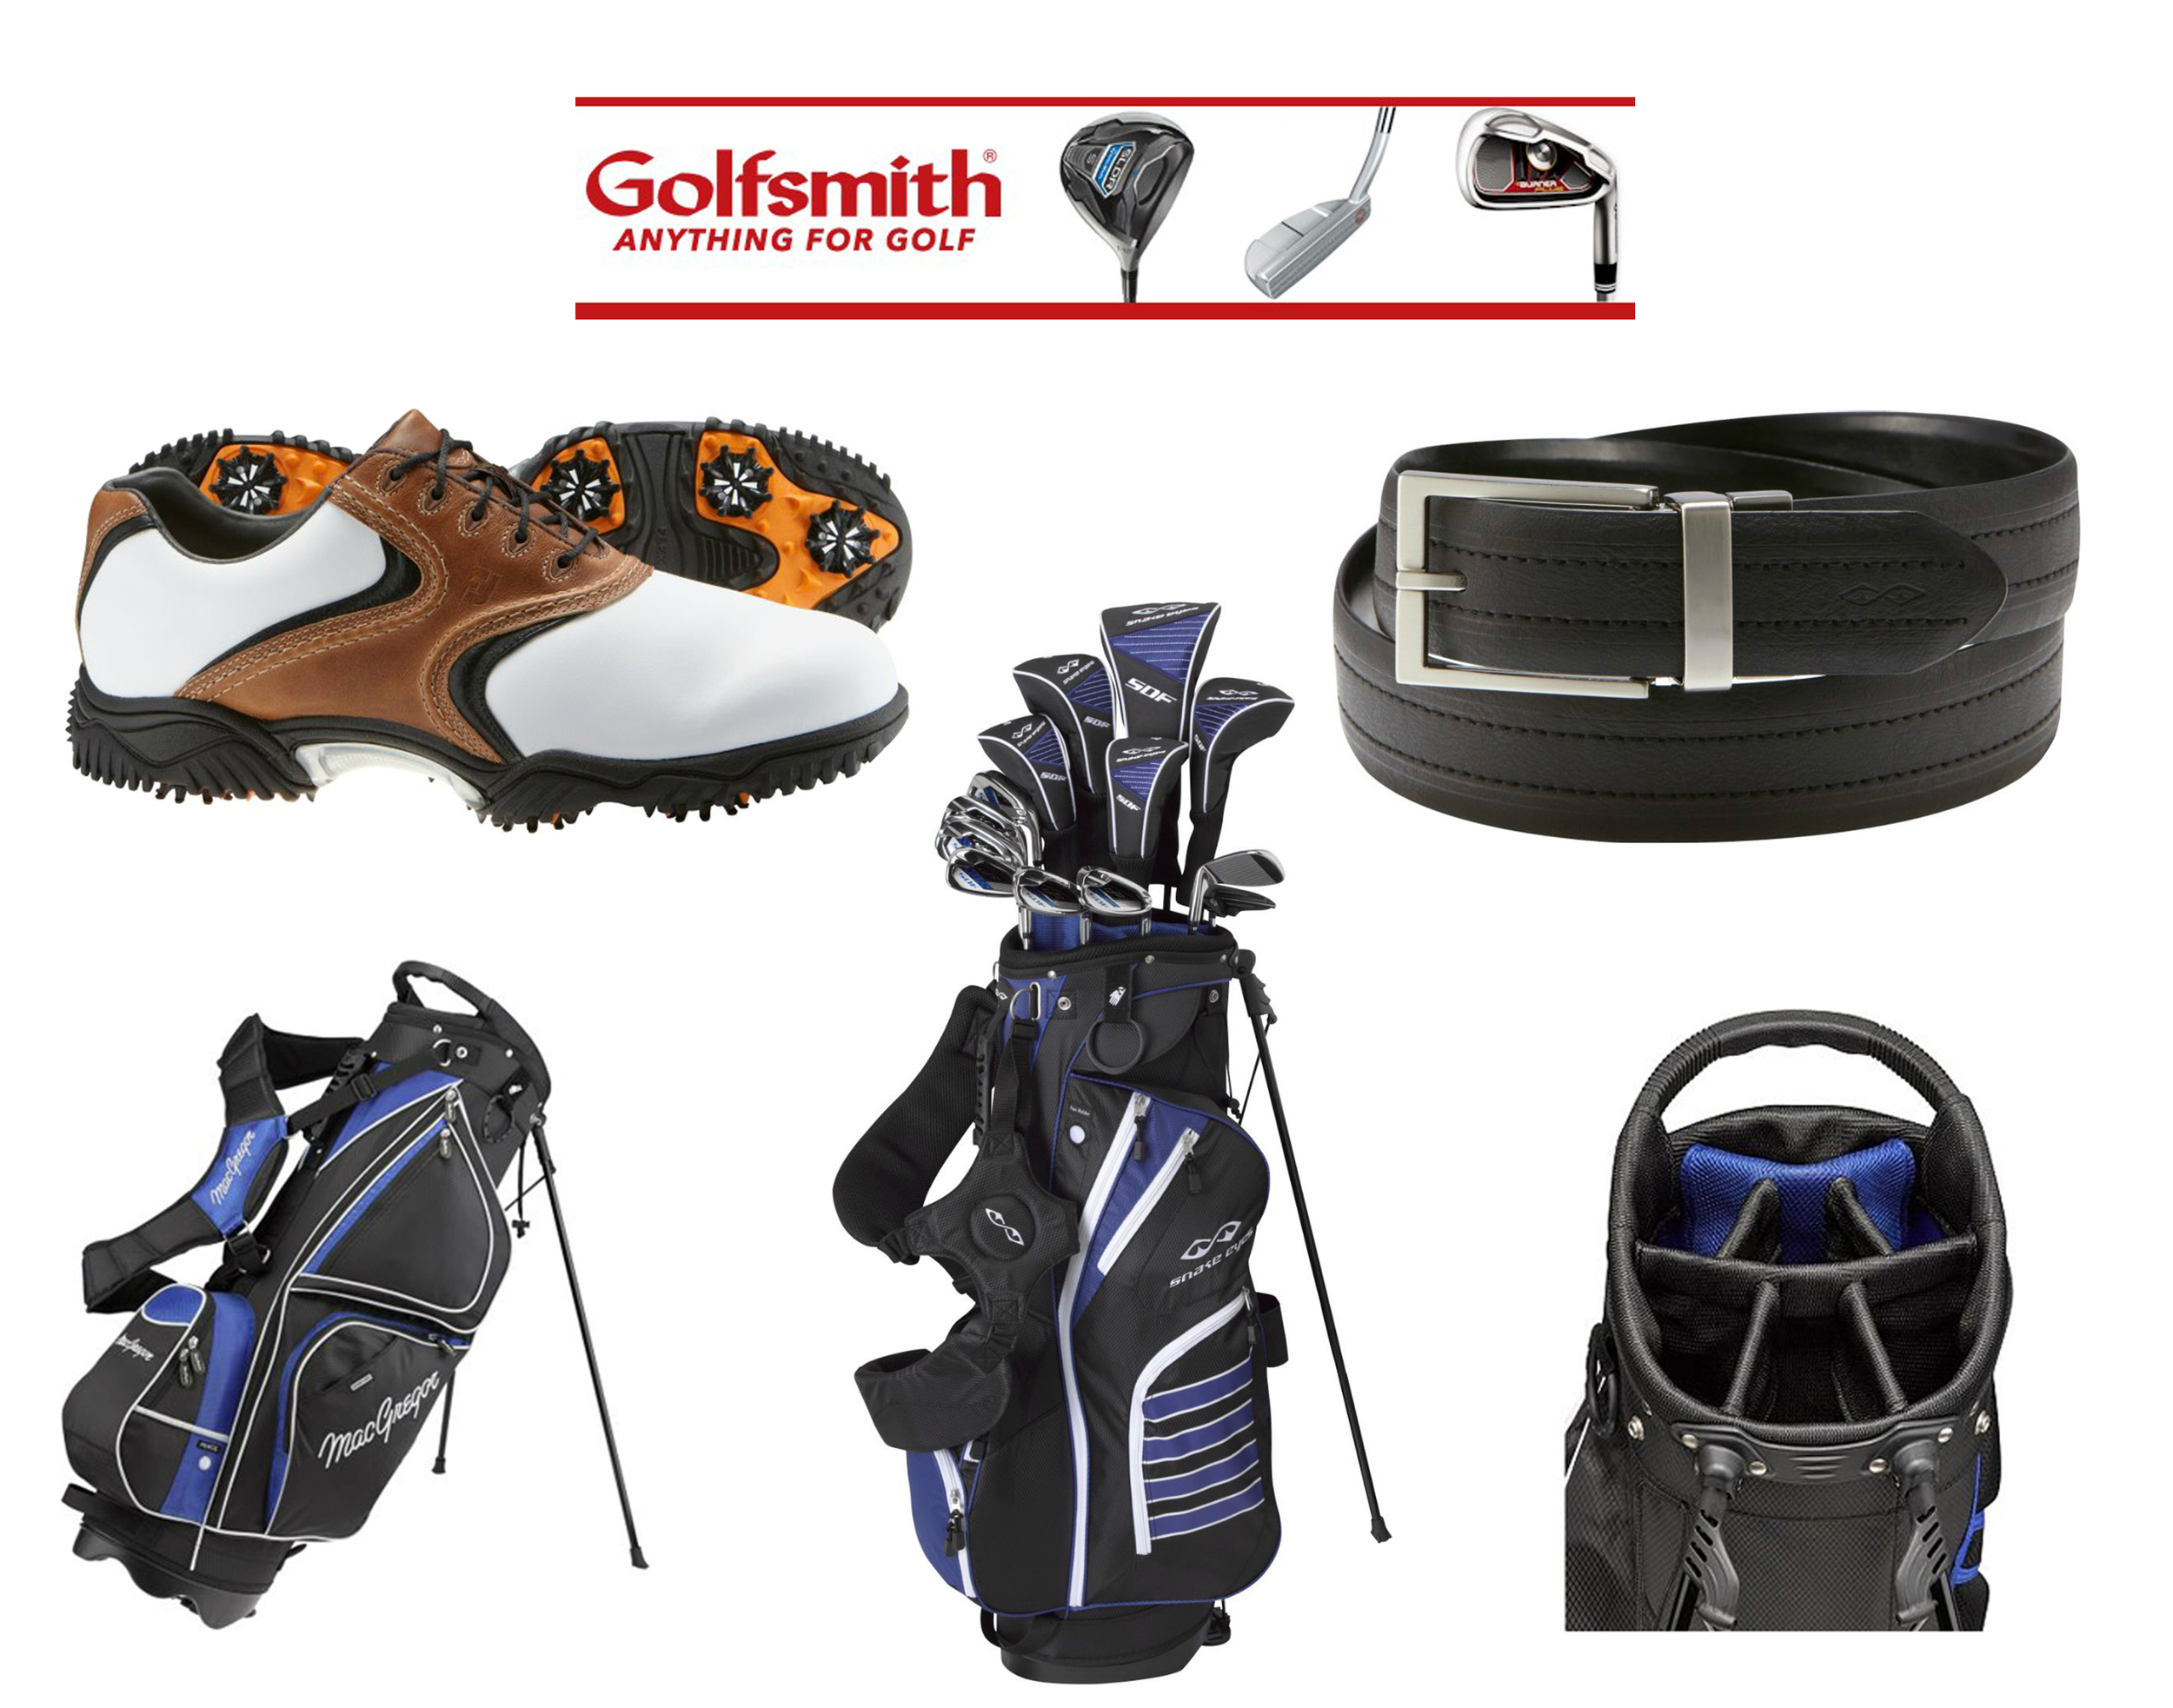 """Golfsmith """"Anything for Golf"""" Campaign"""